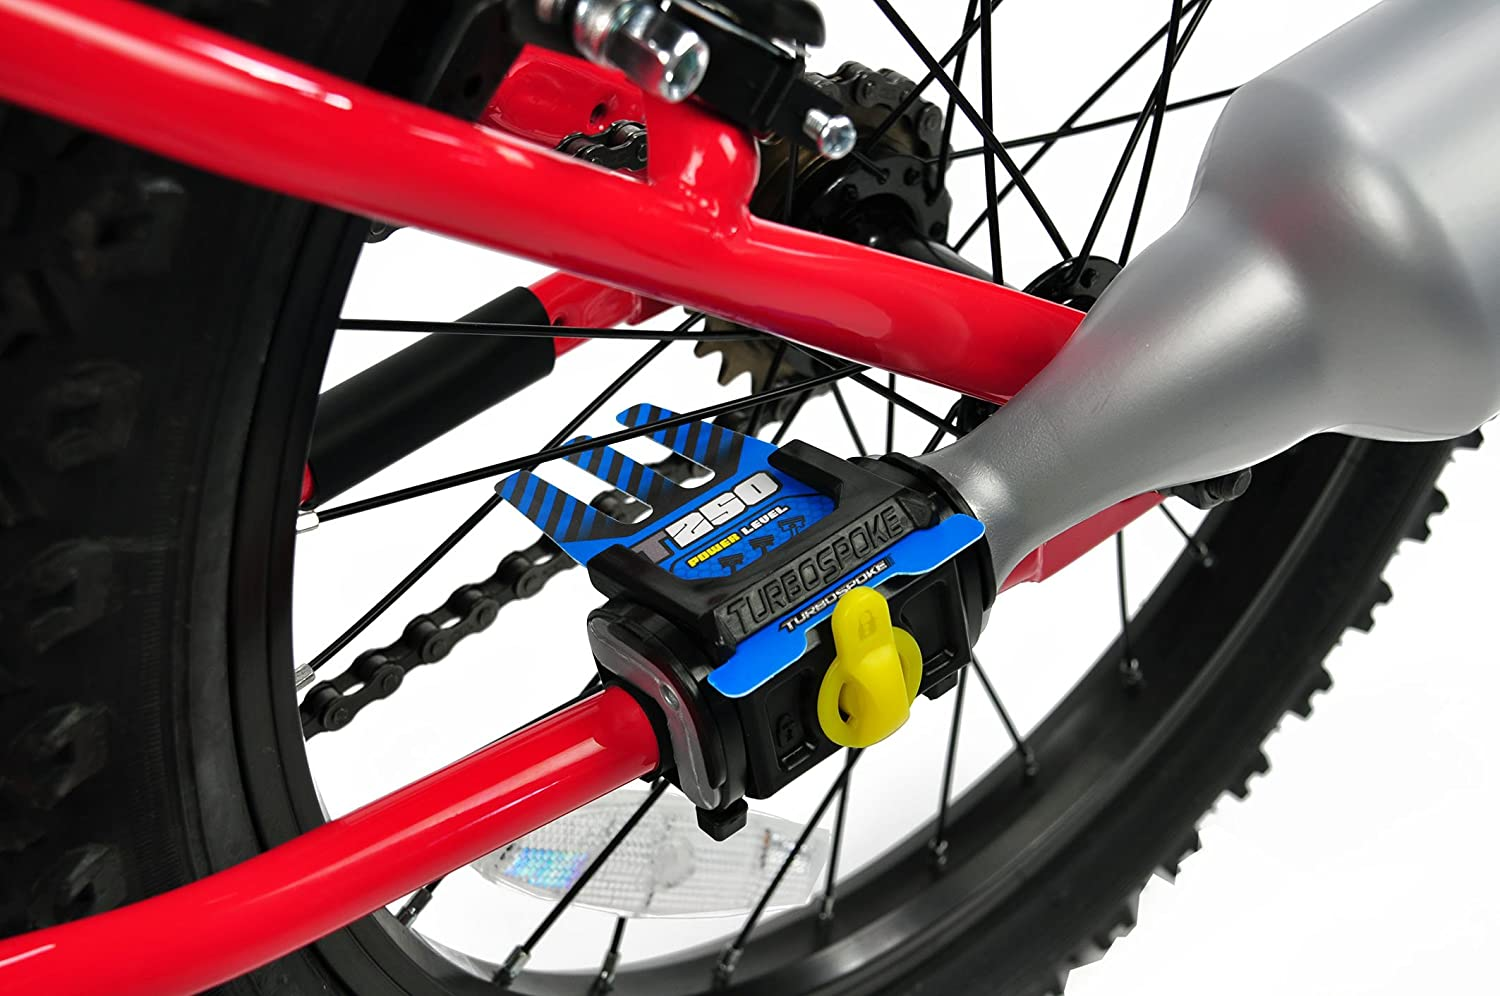 Amazon.com: Turbospoke Bicycle Exhaust Sound System - Bike Accessories - Kids Bikes - Mookie: Toys & Games